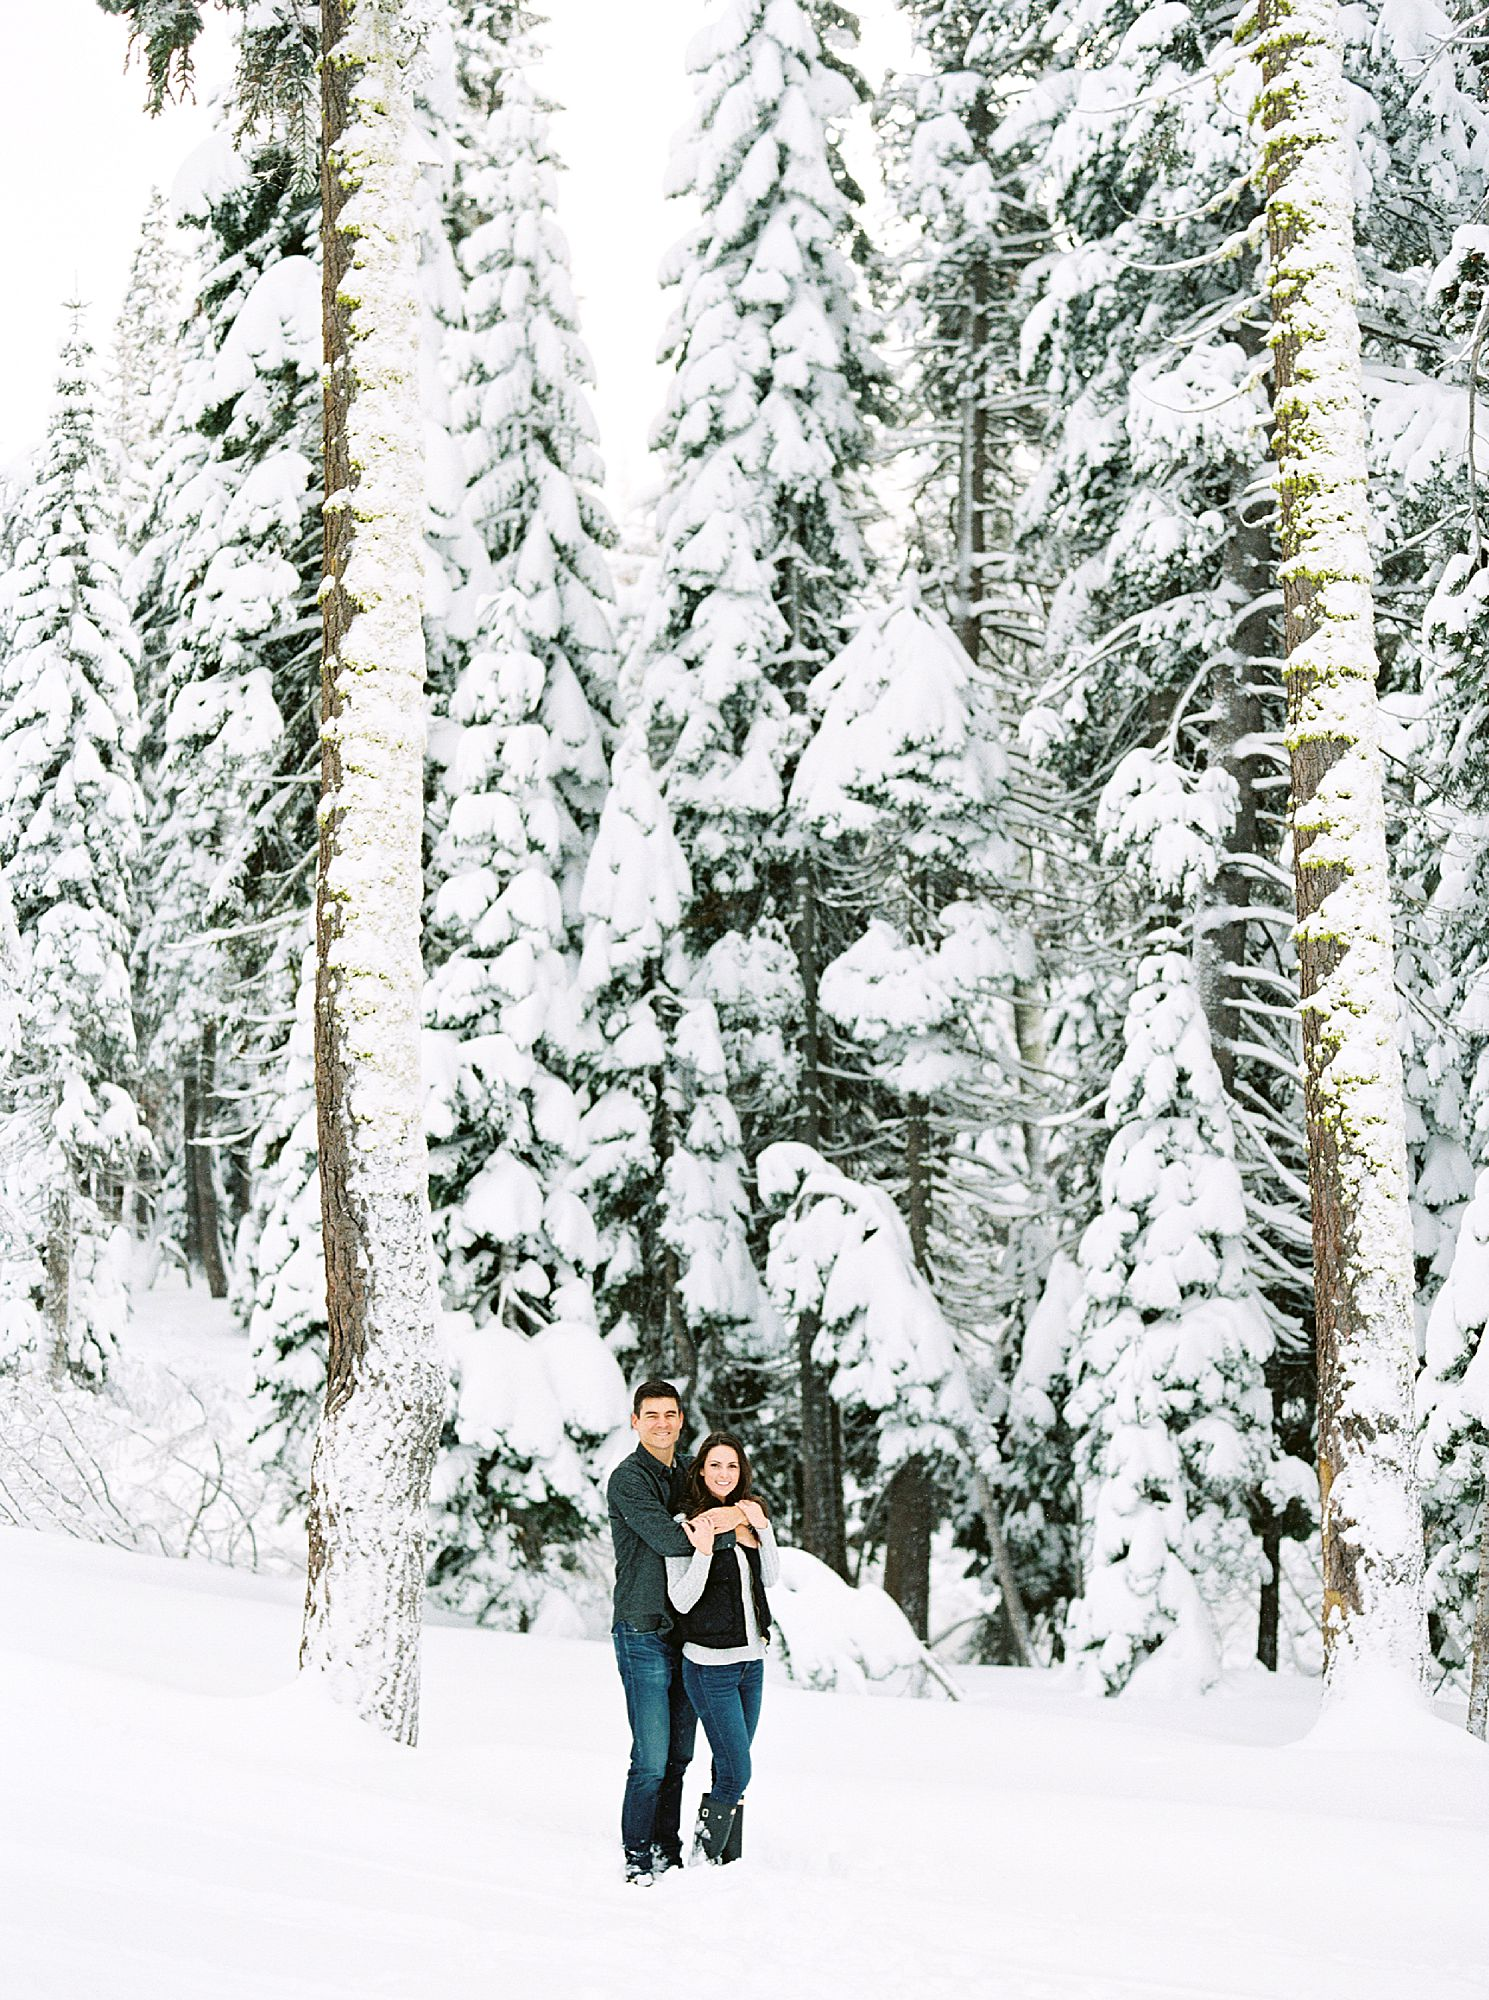 Snowy Tahoe Engagement Session - Alex and Kevin - Ashley Baumgartner - Tahoe Engagement Session - Tahoe Wedding Photographer - Tahoe Engagement Photos - Snow Engagement Photos_0014.jpg